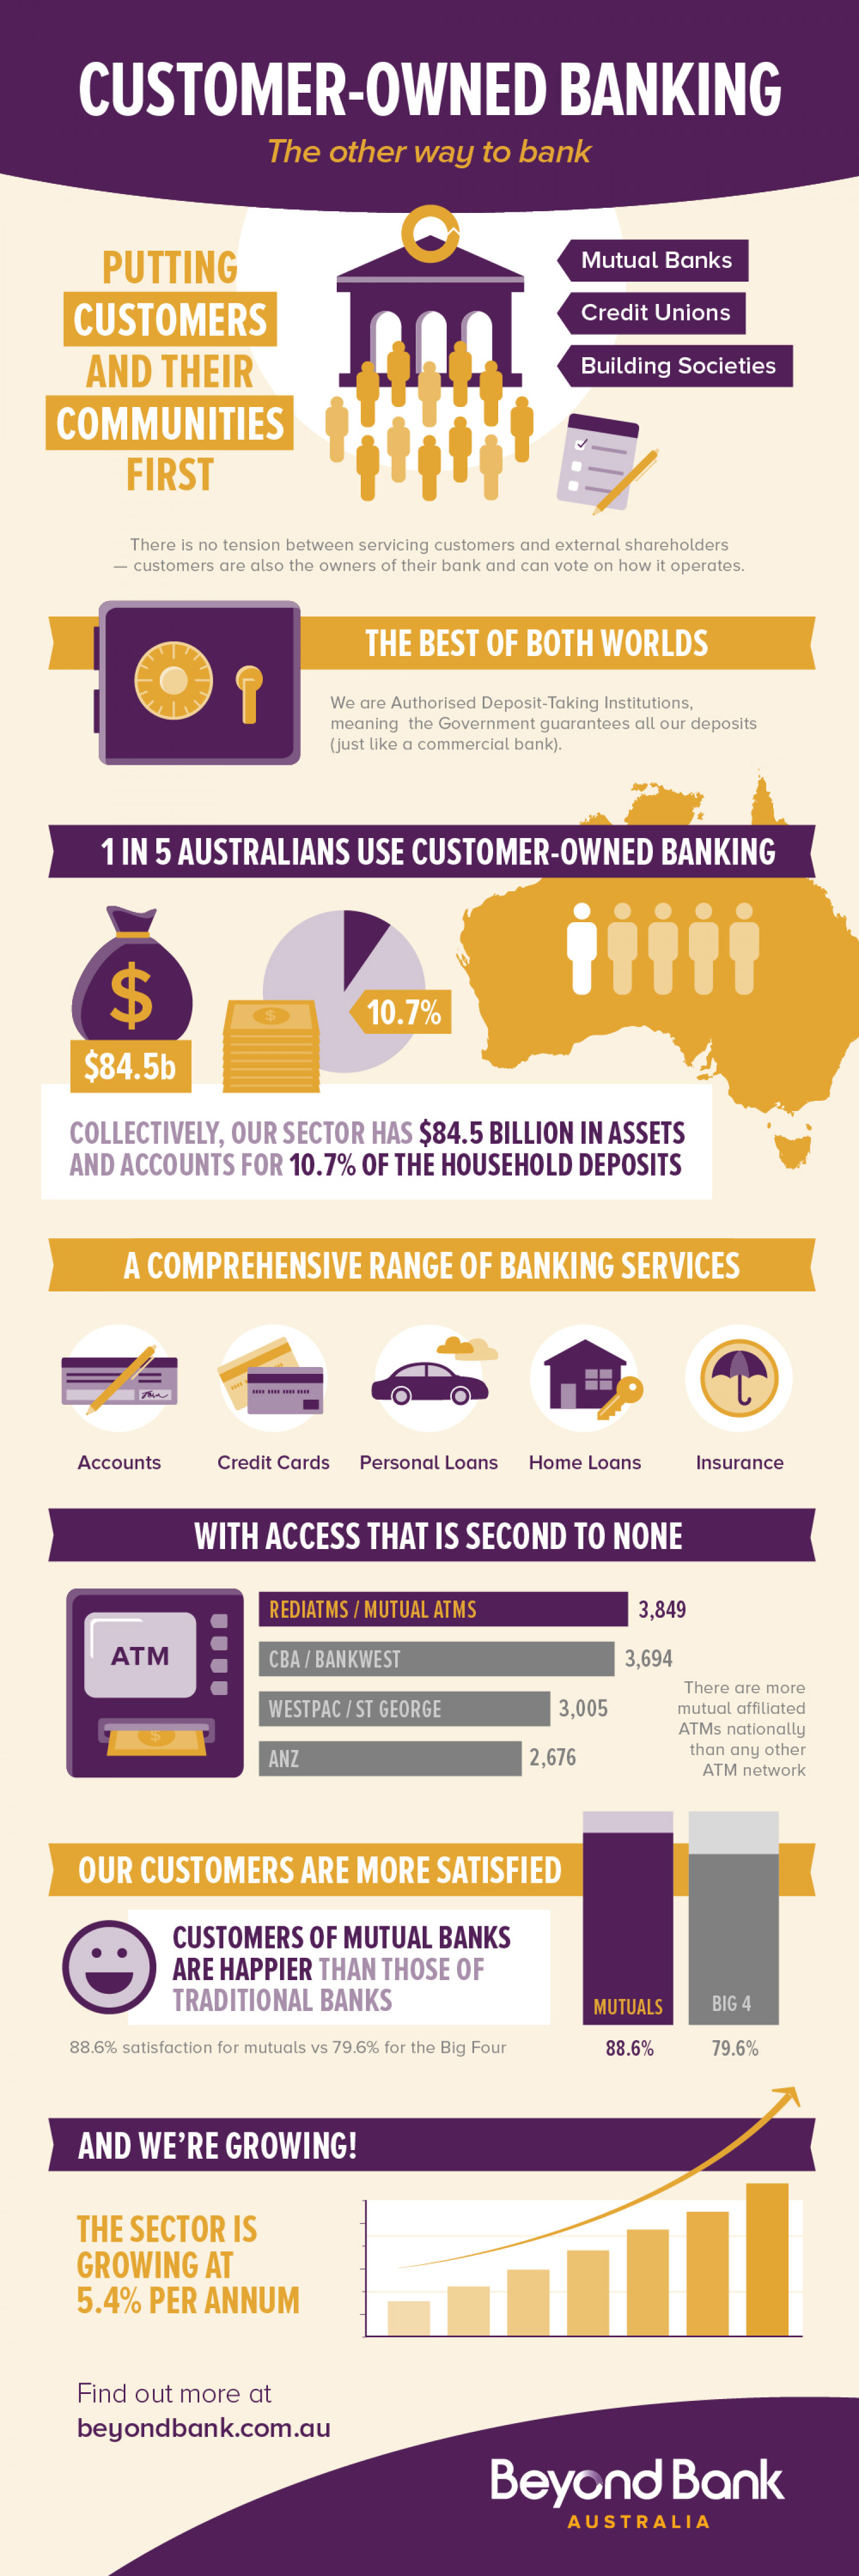 Customer-Owned Banking Infographic Infographic